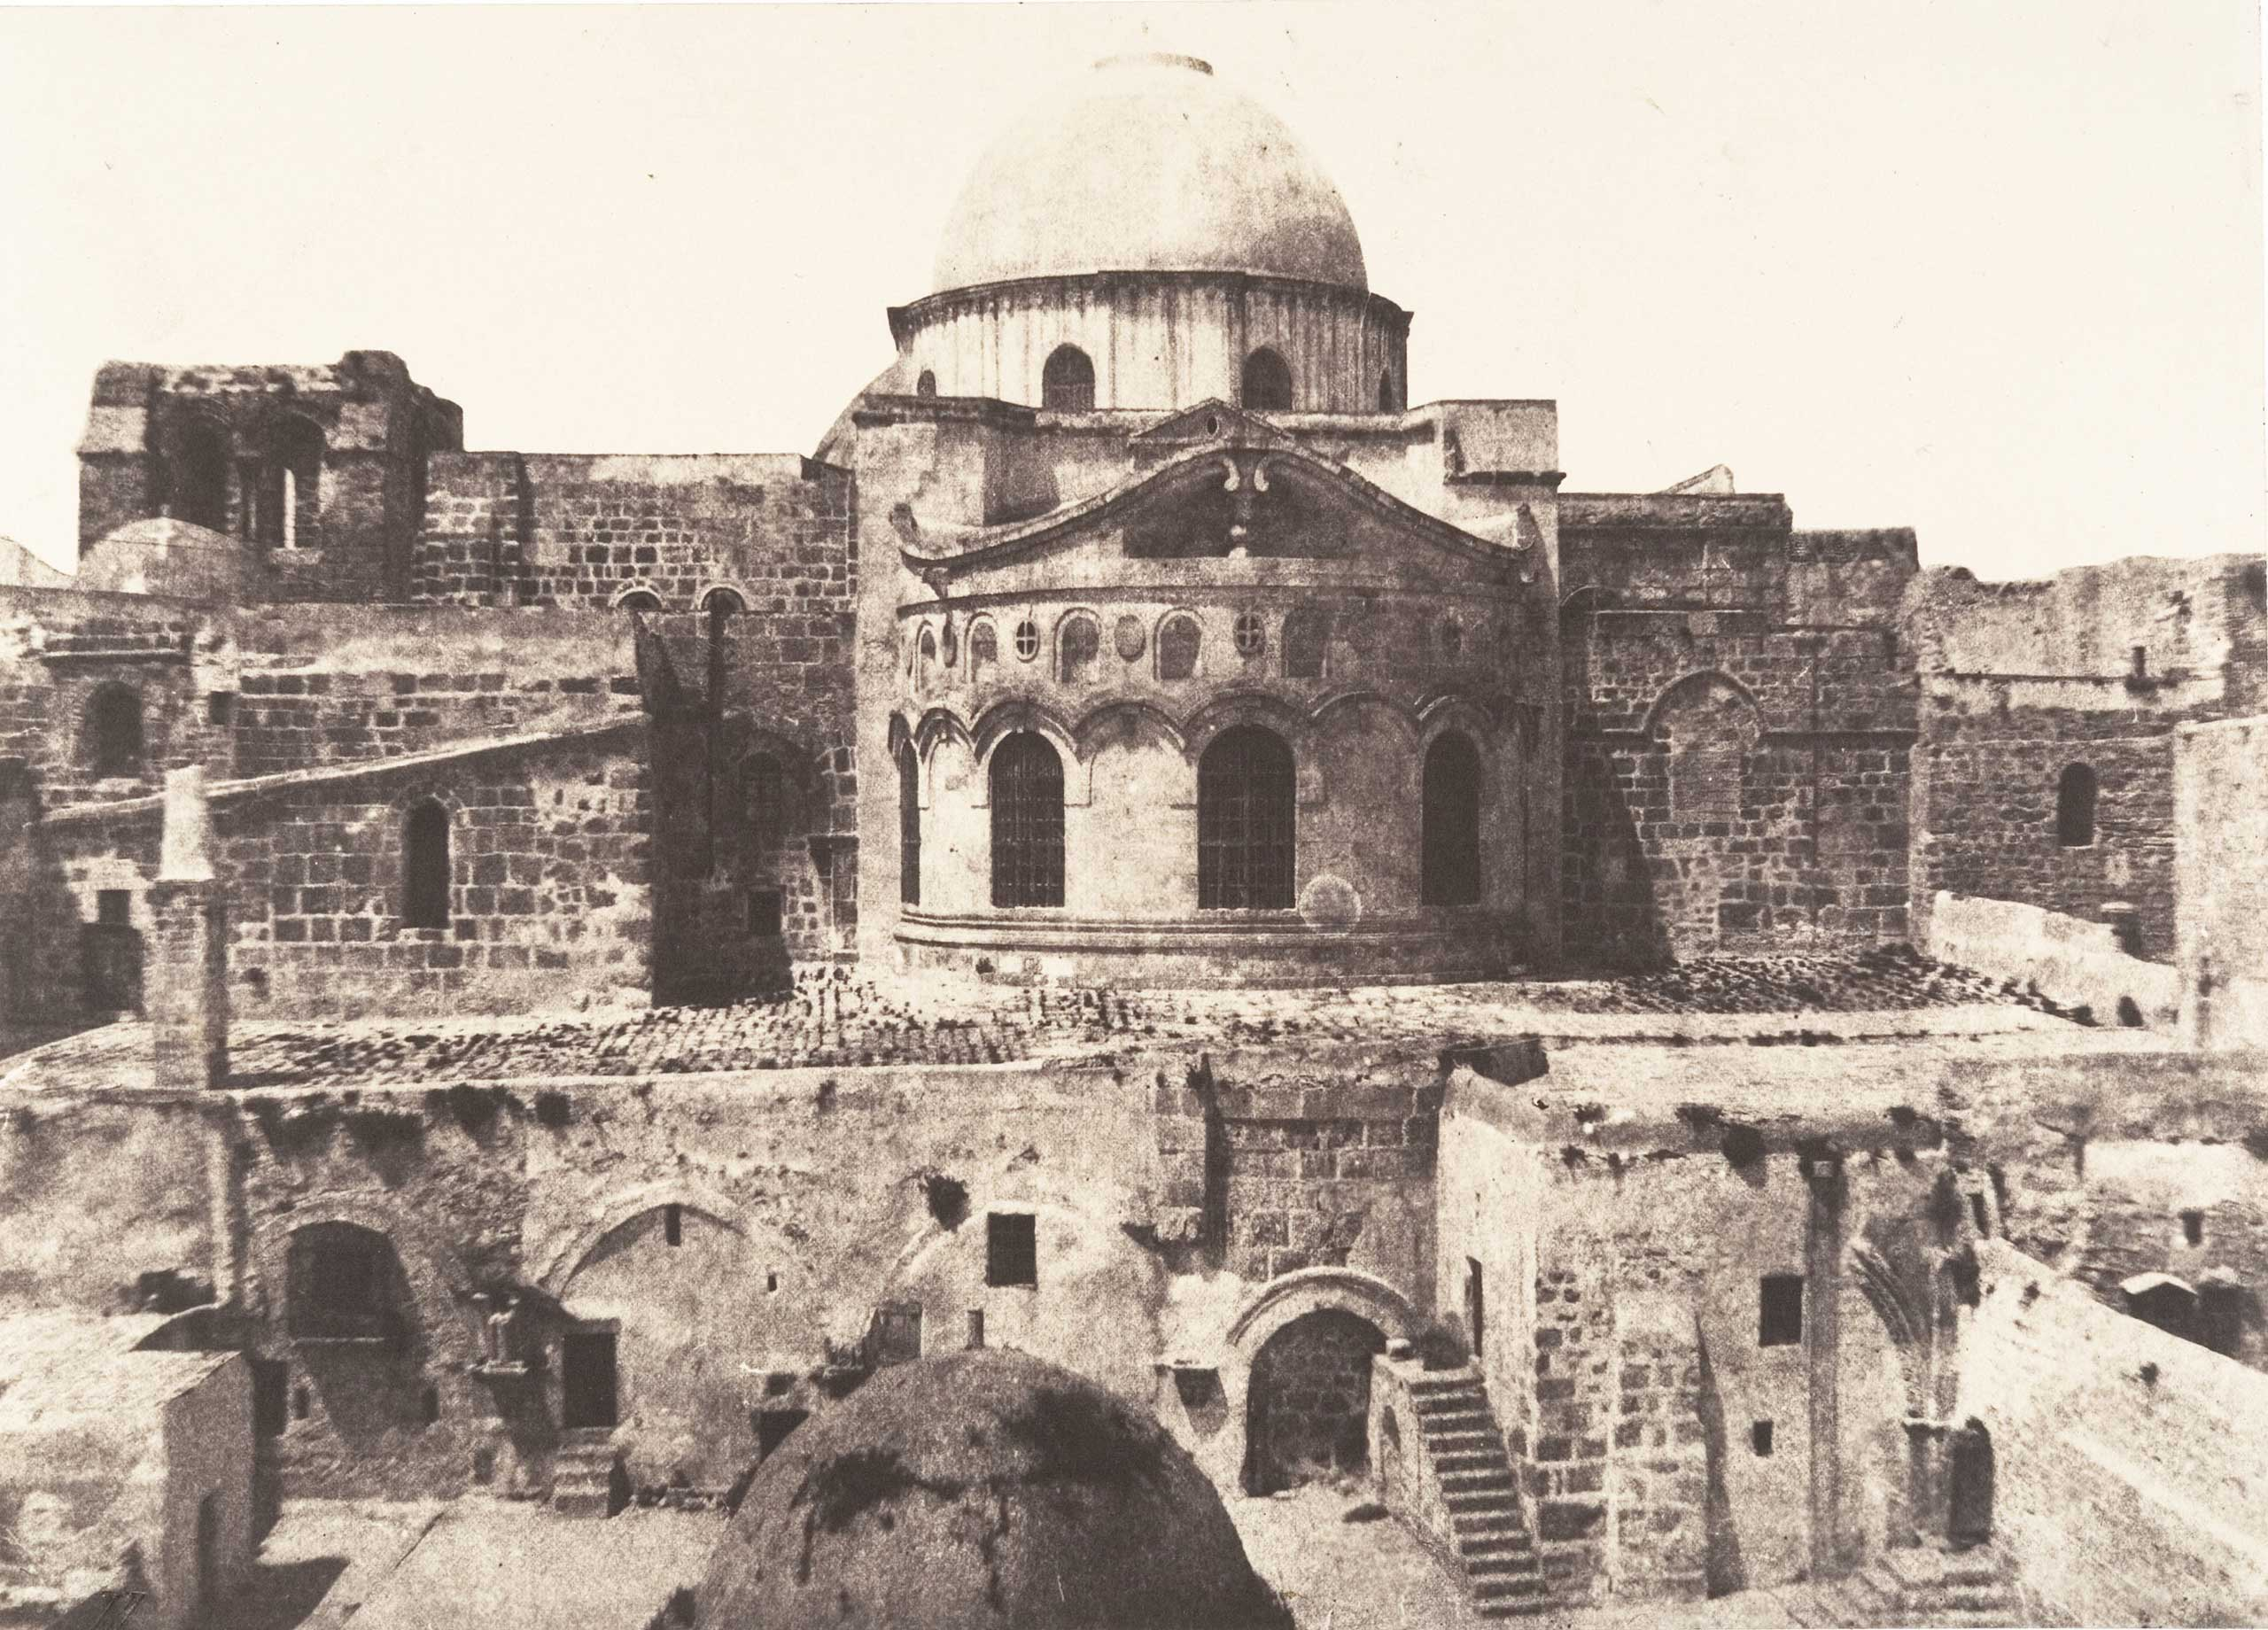 Faith and Photography: Auguste Salzmann in the Holy Land, The Met, N.Y.: Sept. 12 - Feb. 5, 2017                                                                                             (Caption: Jerusalem, Church of the Holy Sepulchre, Apse, 1854)